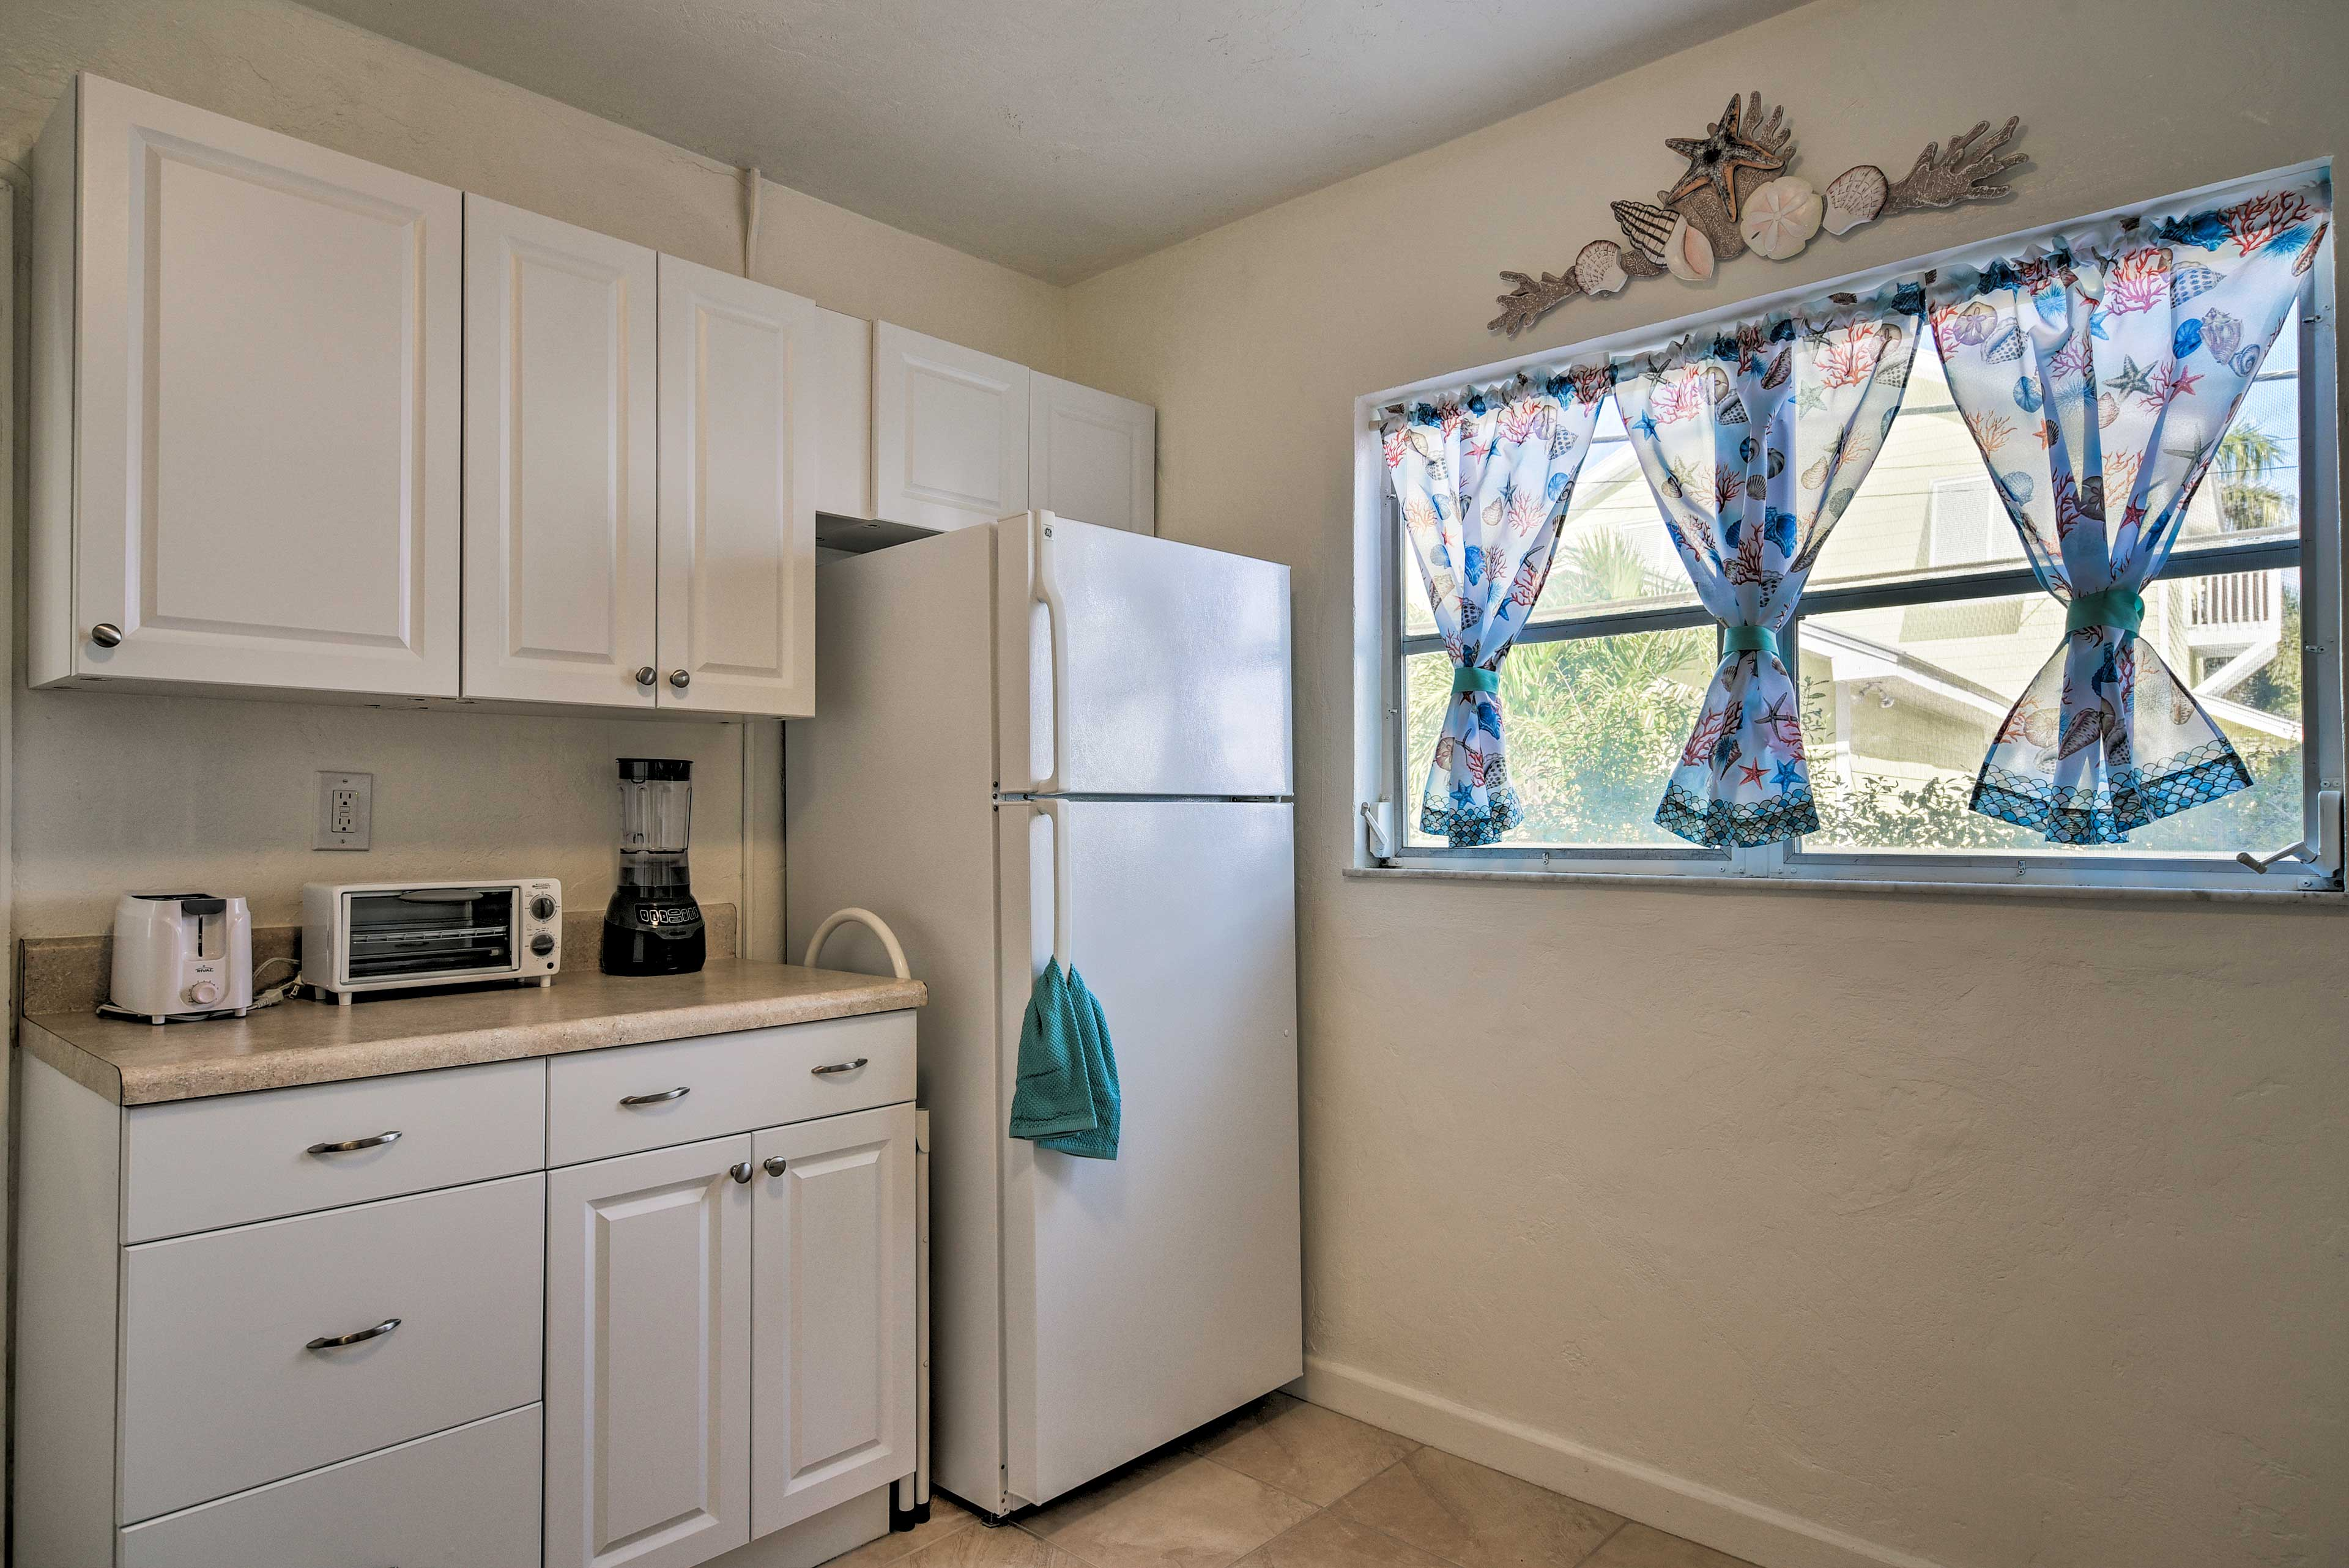 The kitchen is fully equipped with all the cooking appliances you'll need!